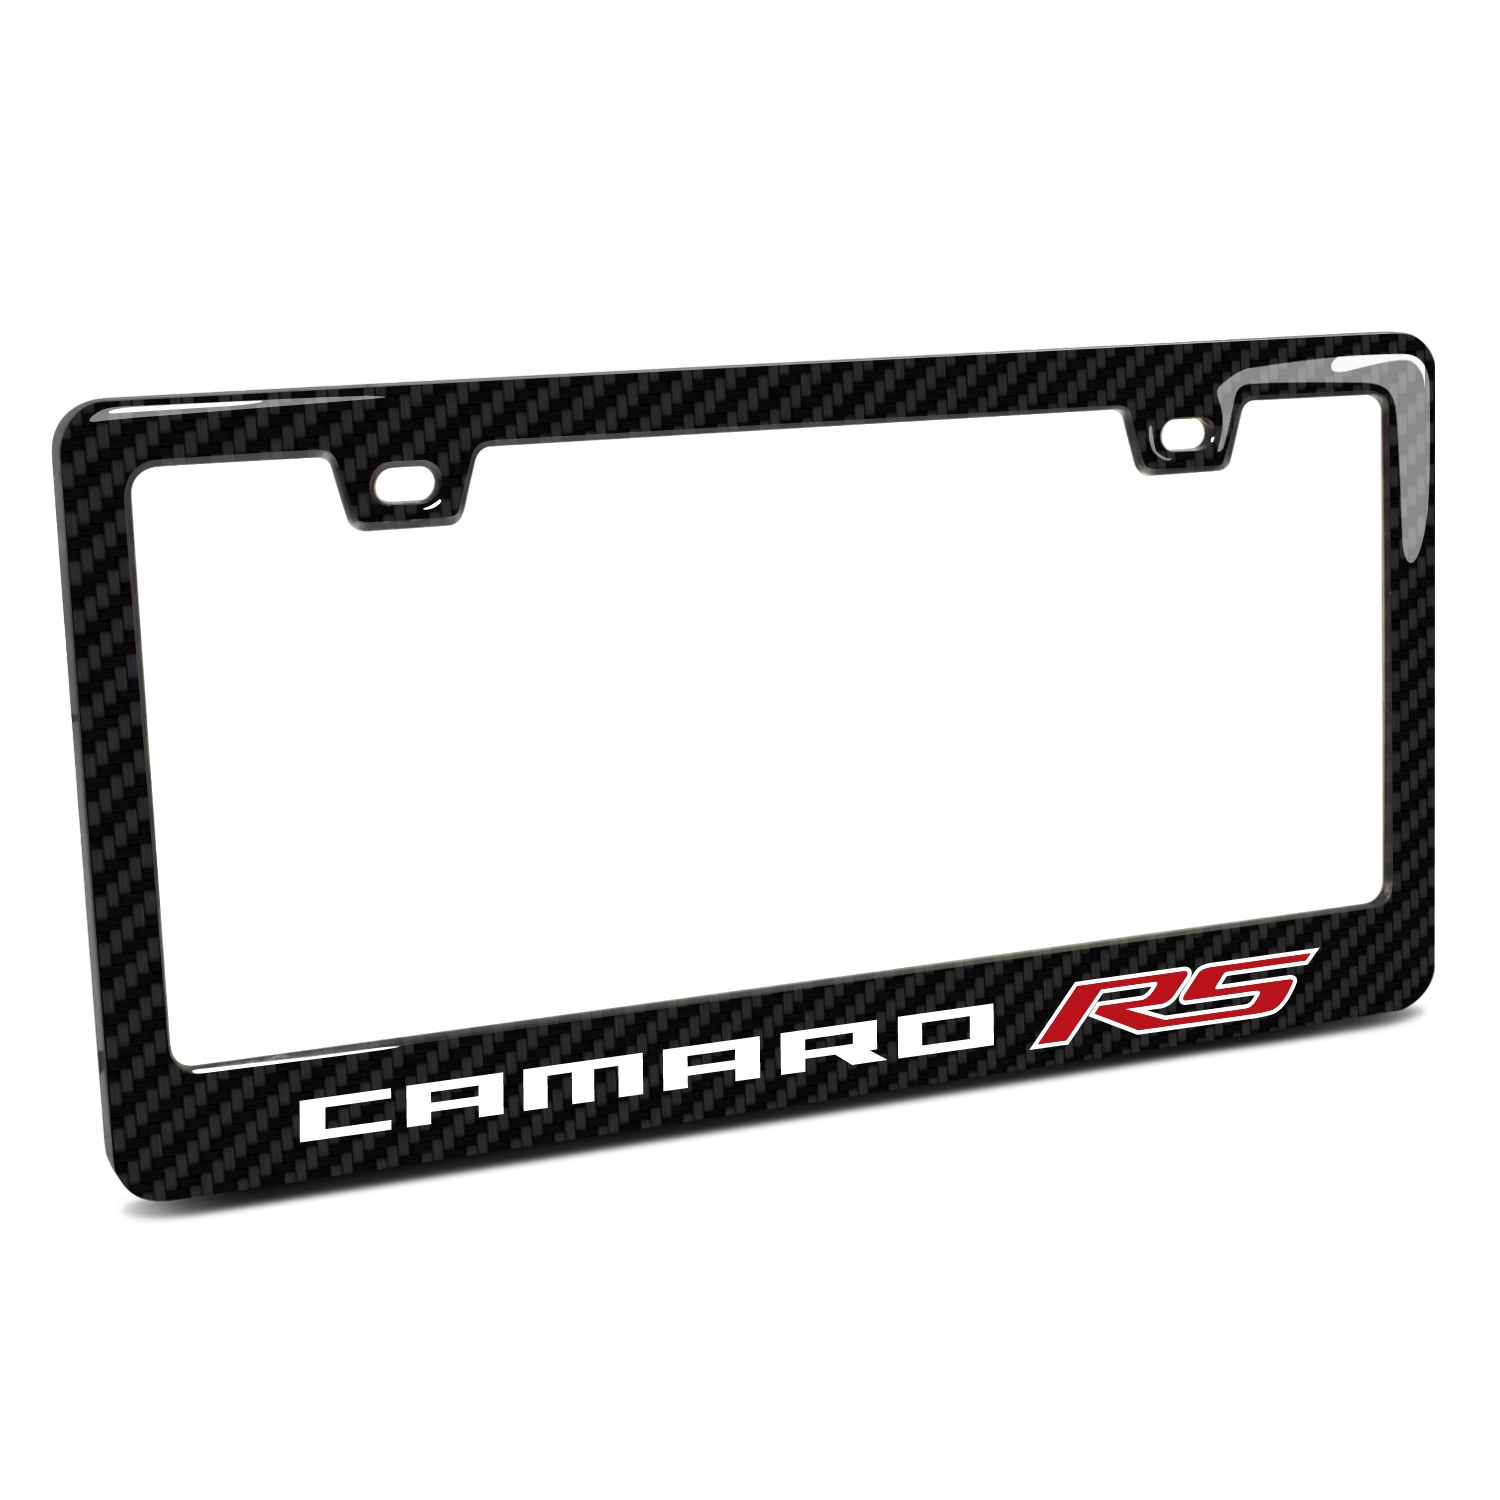 Chevrolet Camaro RS  in 3D on Real 3K Carbon Fiber Finish ABS Plastic License Plate Frame